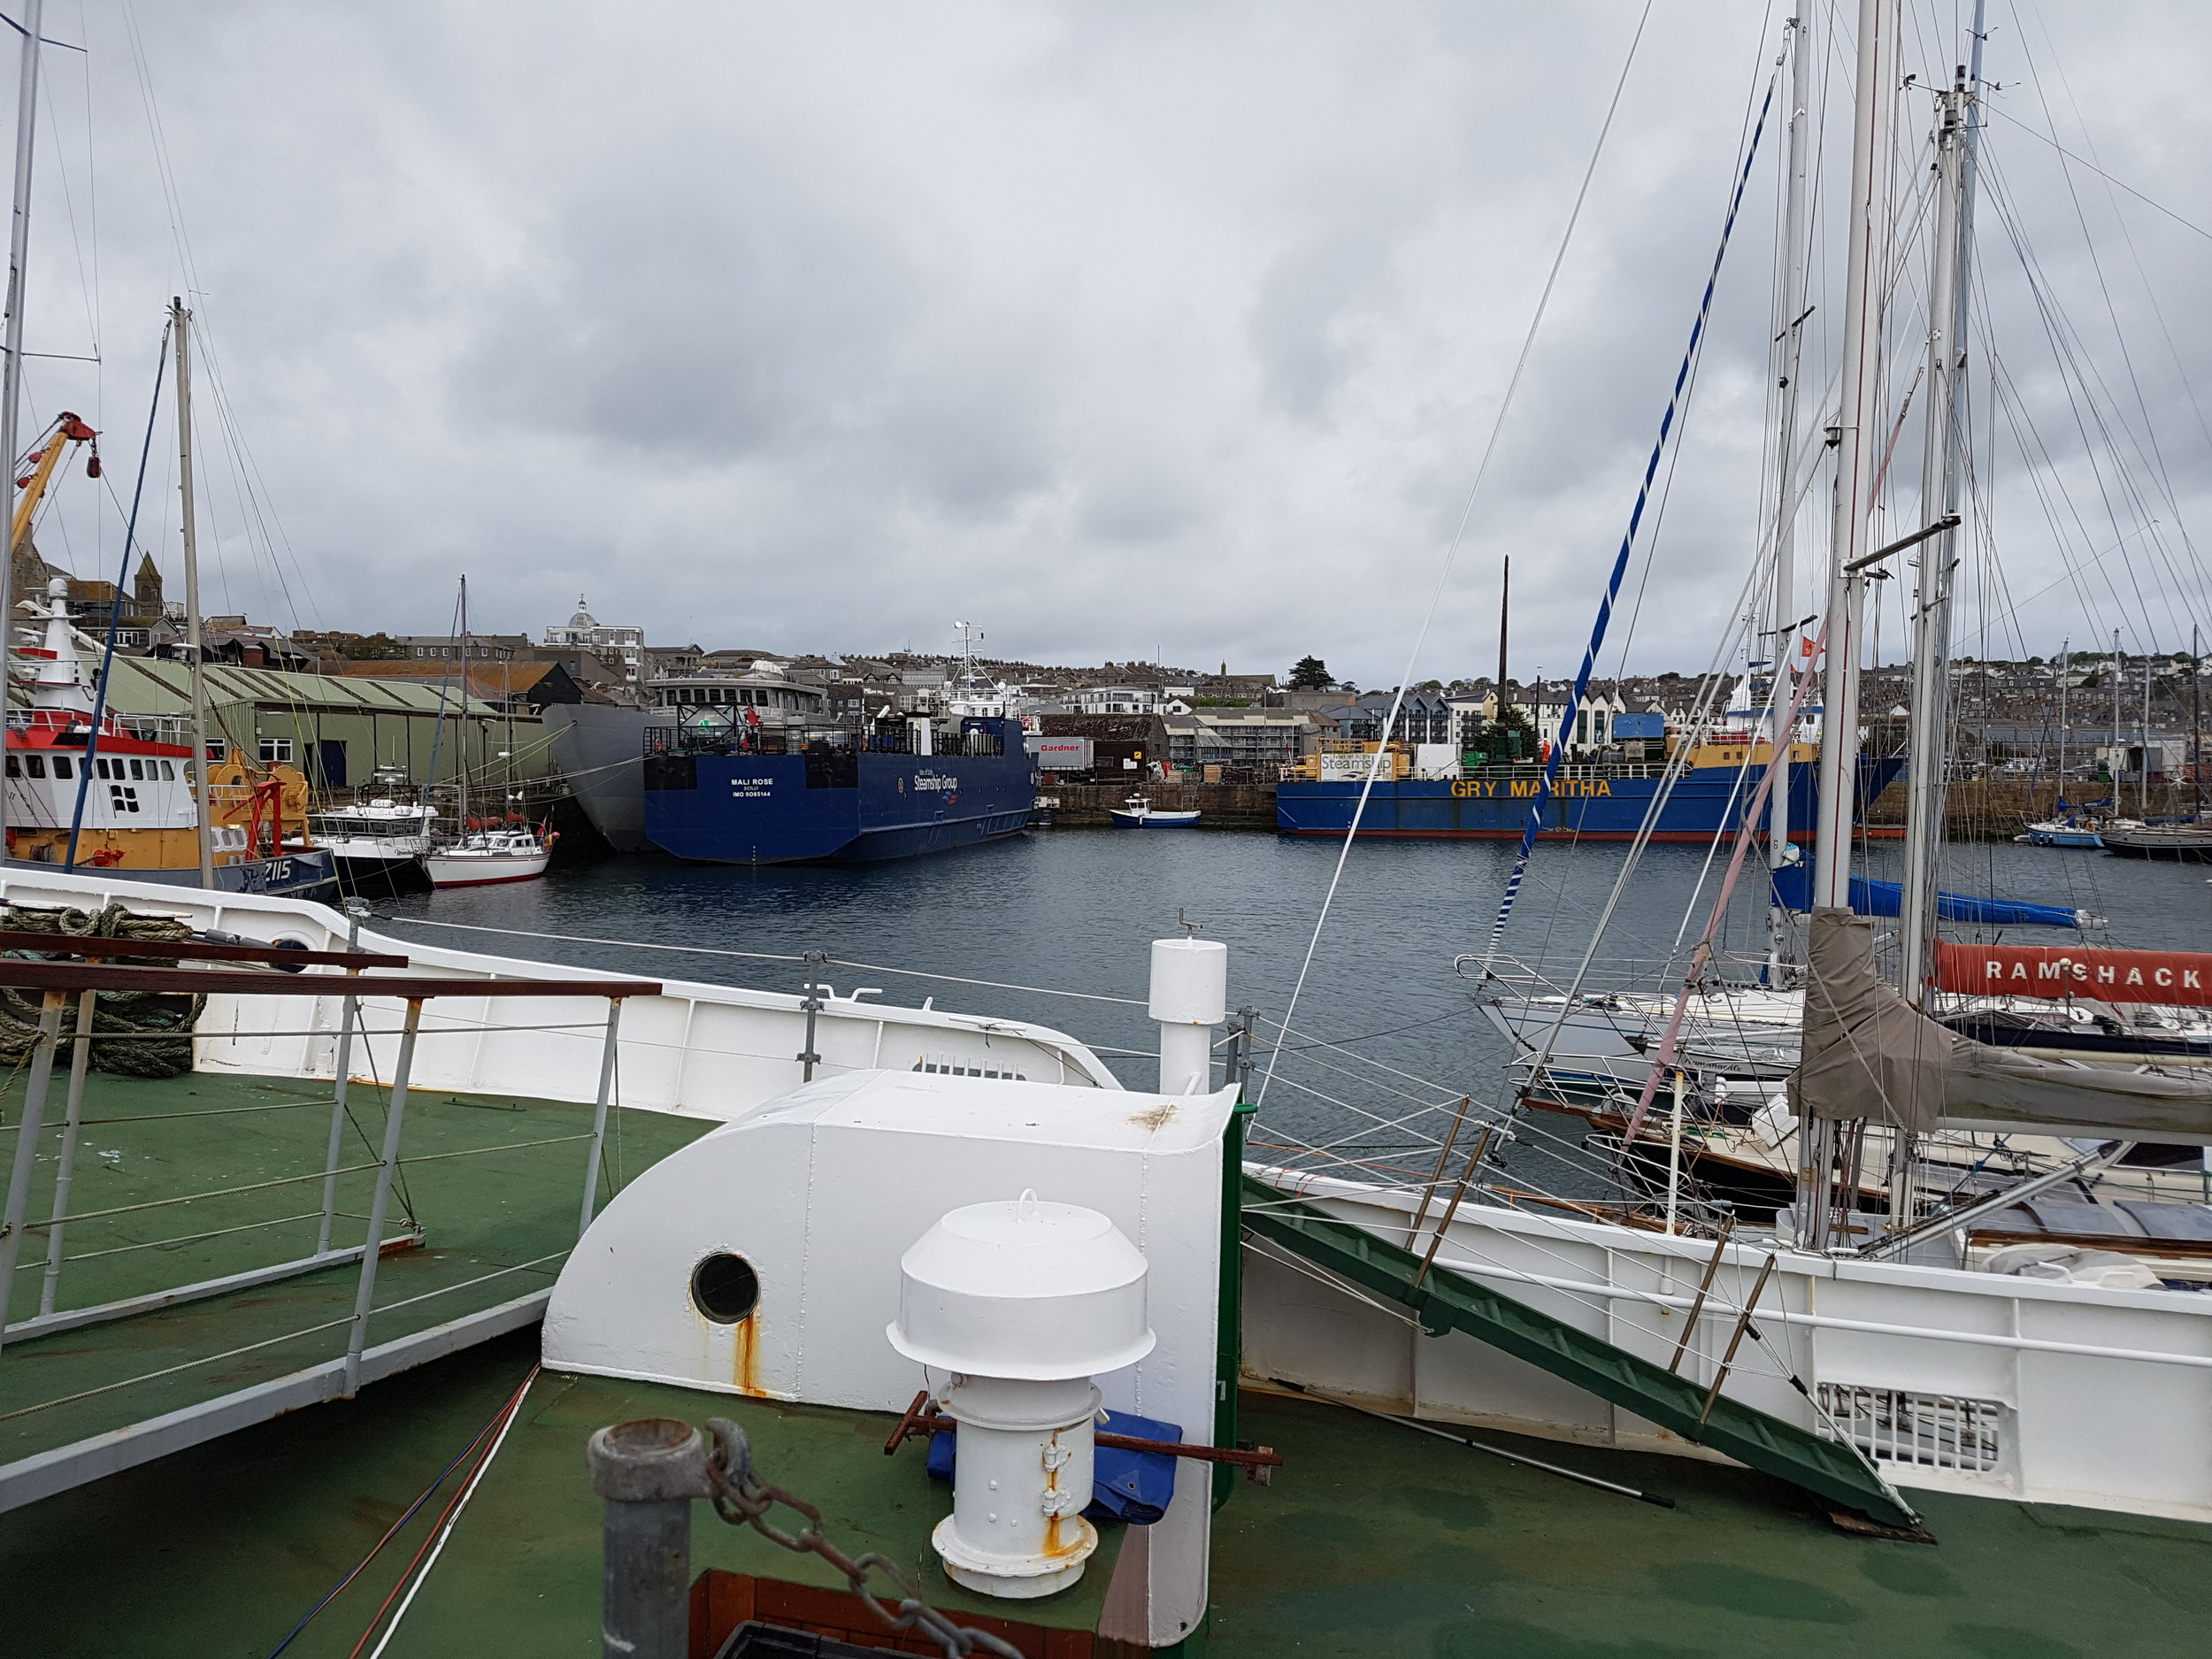 The Mali rose and Gry Maritha in Penzance Harbour.